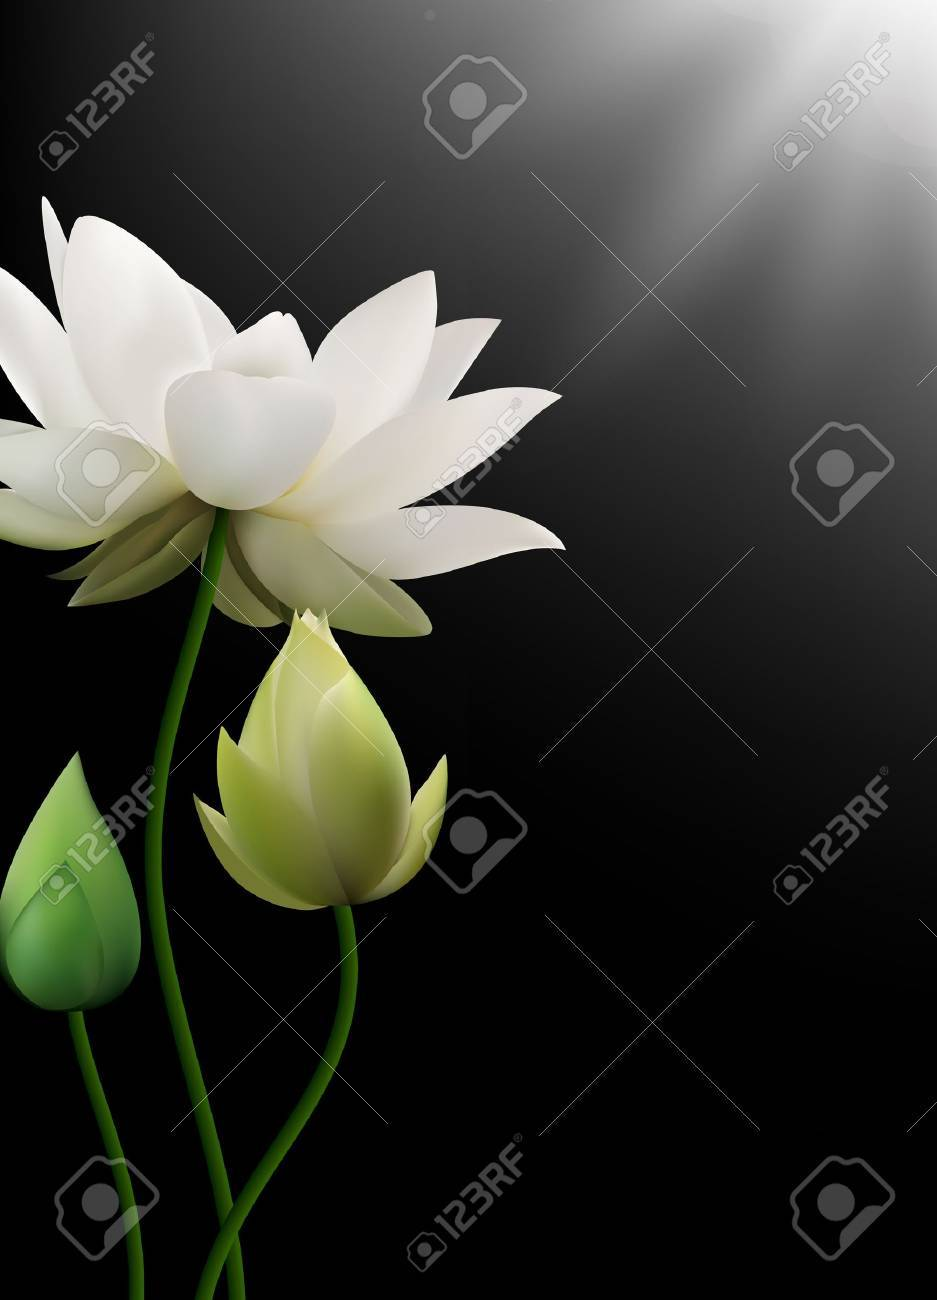 Vector Illustration Of White Lotus Flowers With Rays On Black